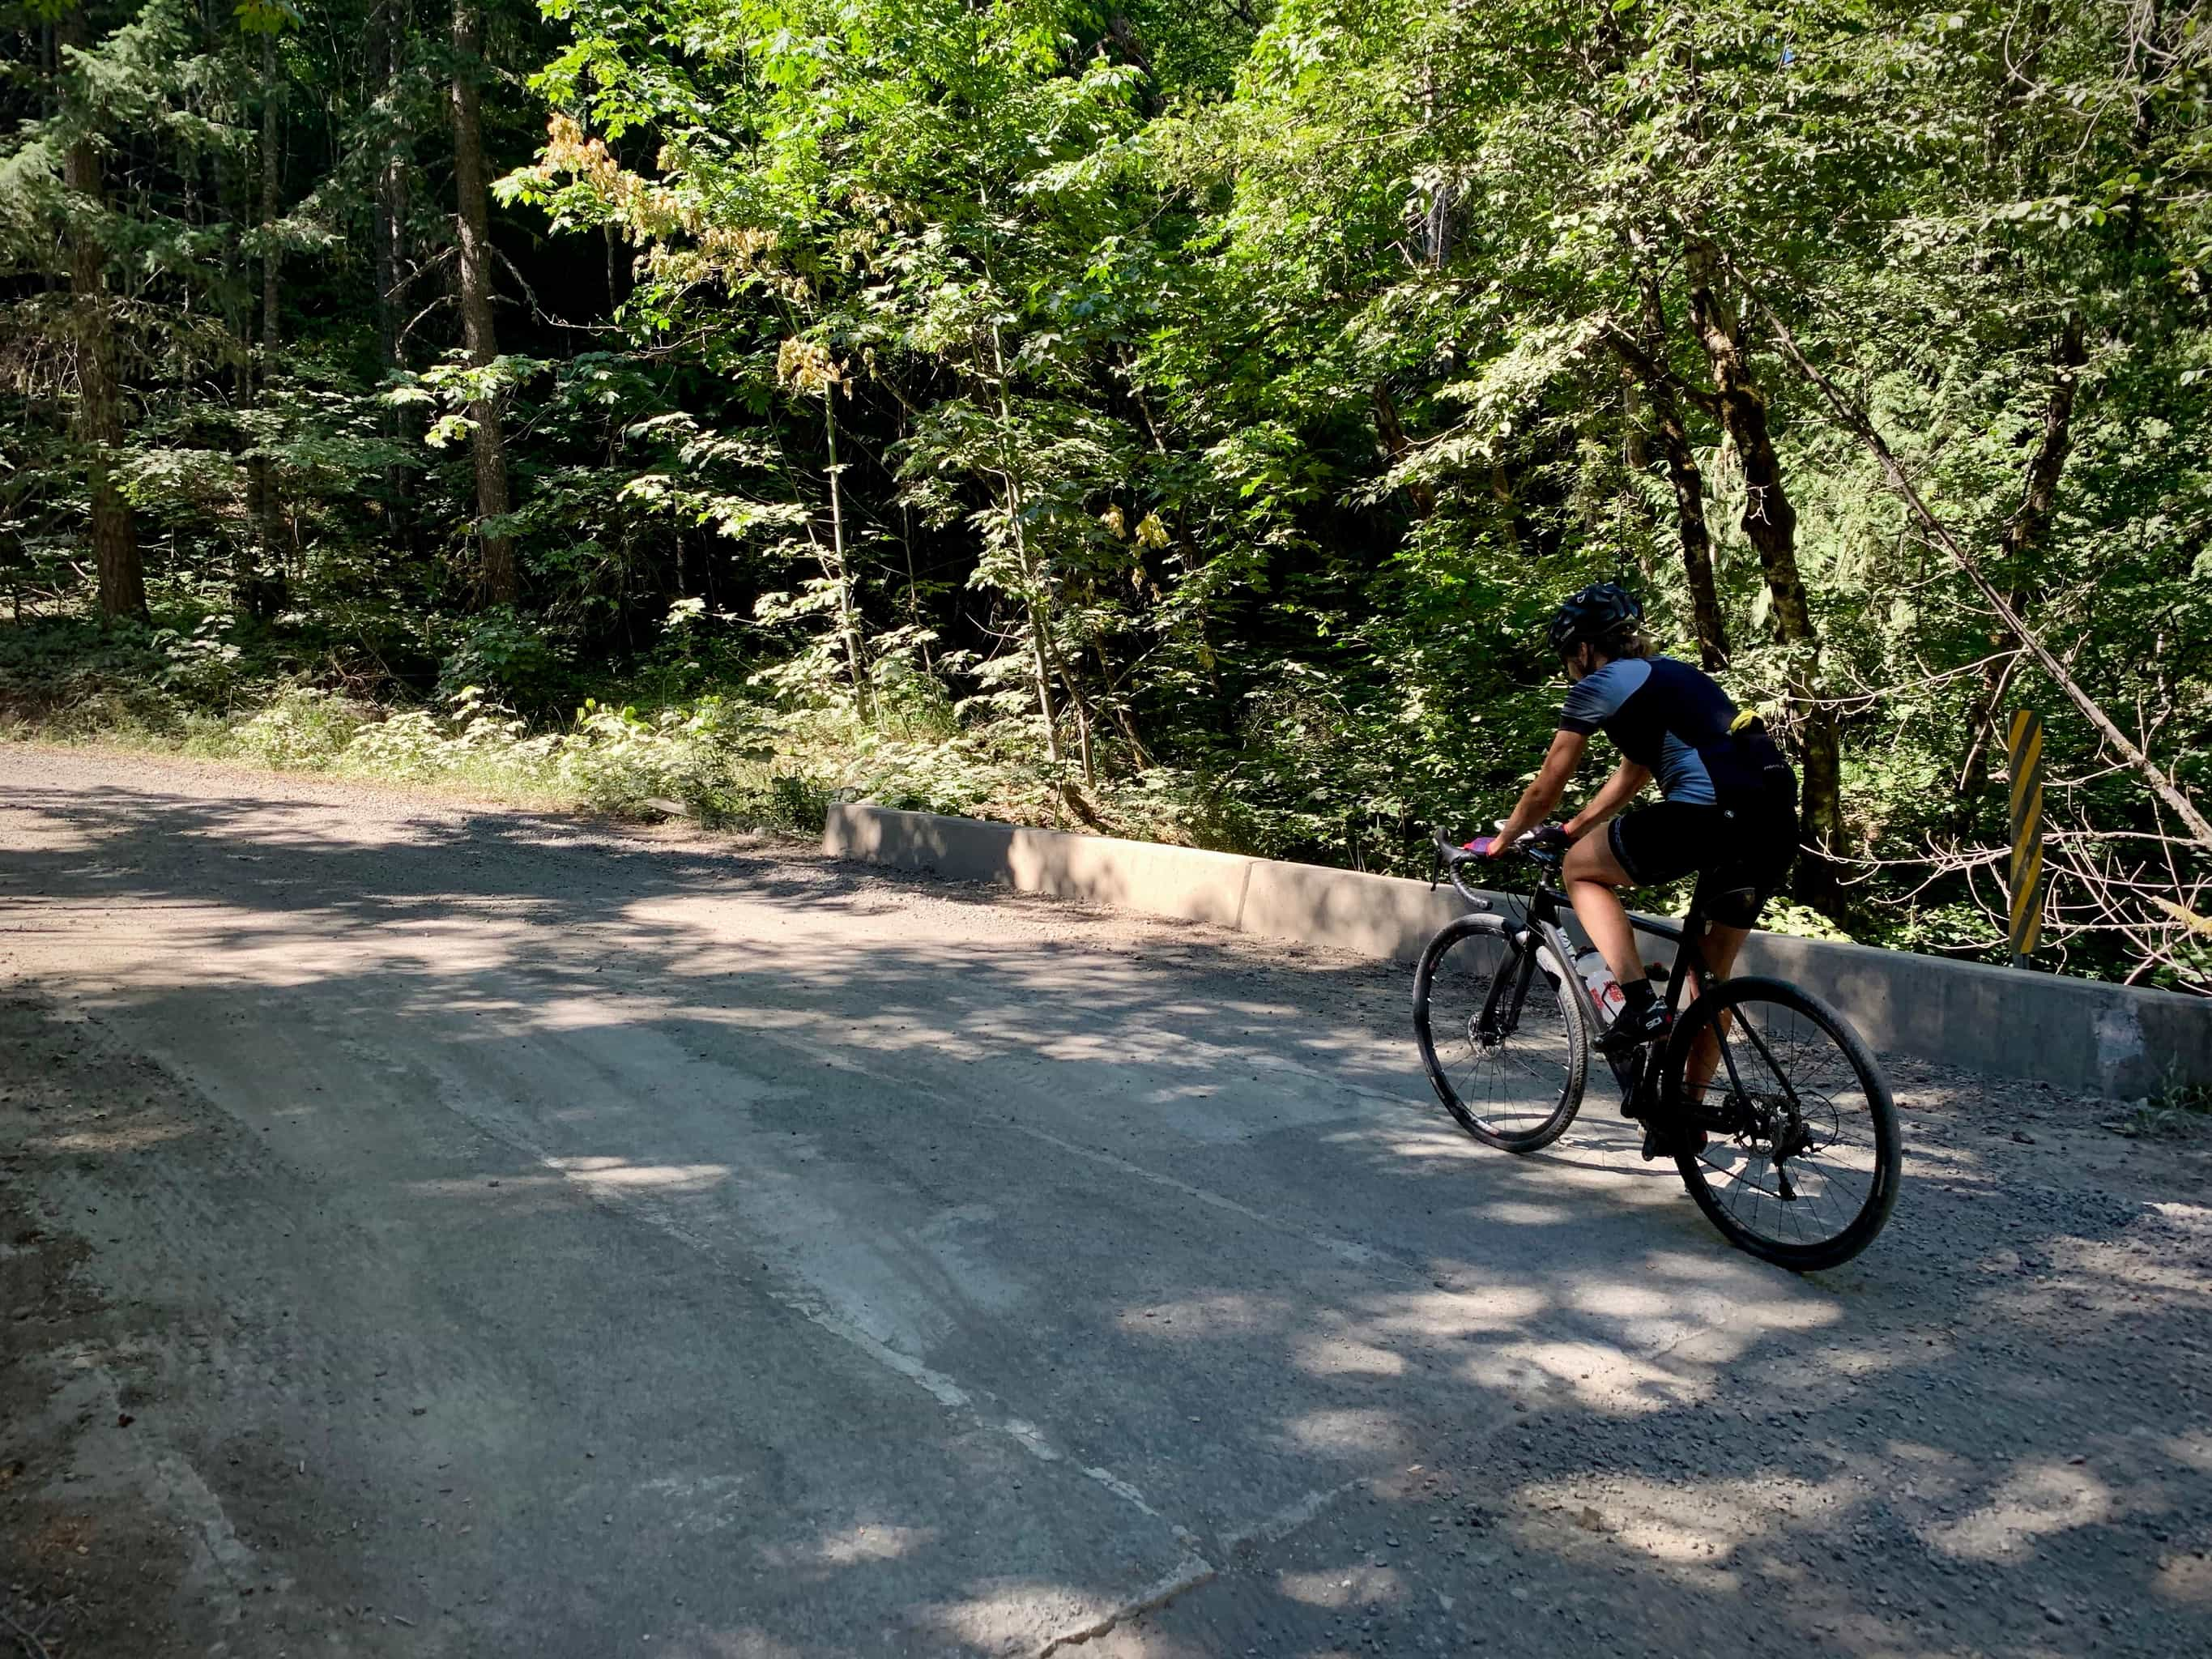 Cyclist on gravel road crossing over Dead Point creek in Hood River county.